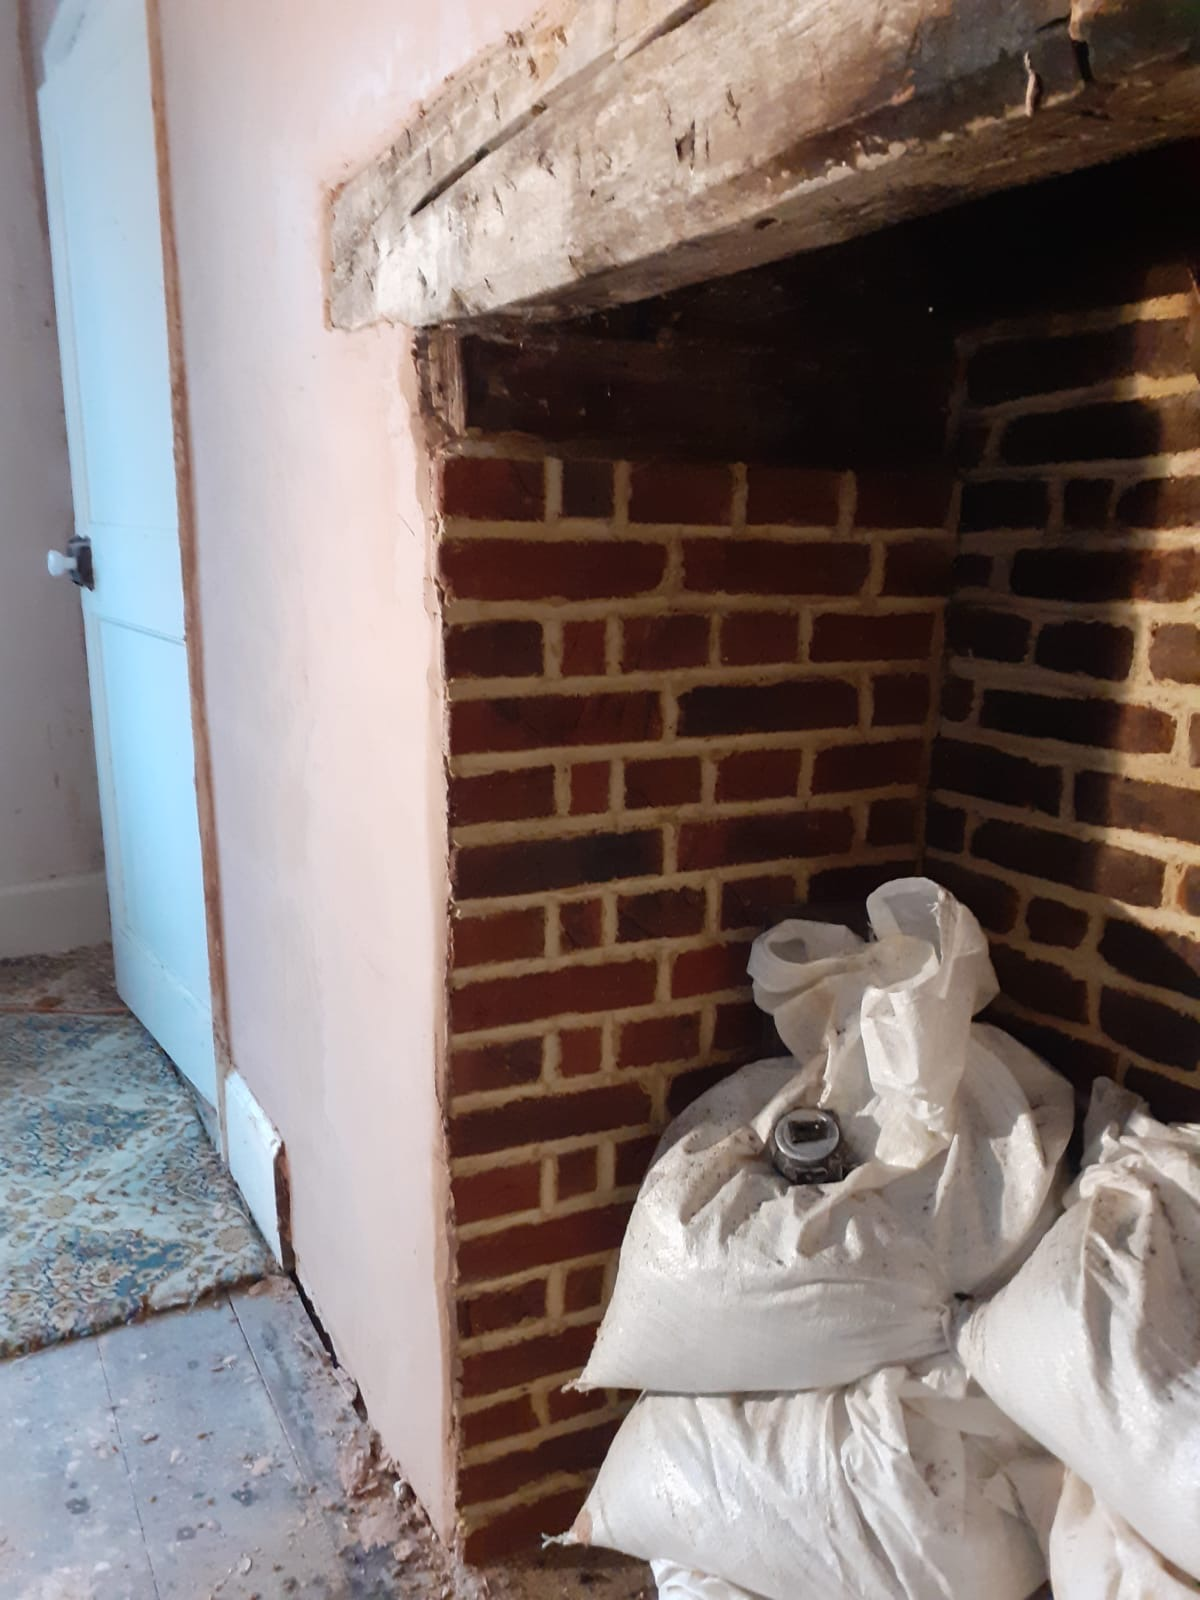 Brick slip tiles stuck in fireplace